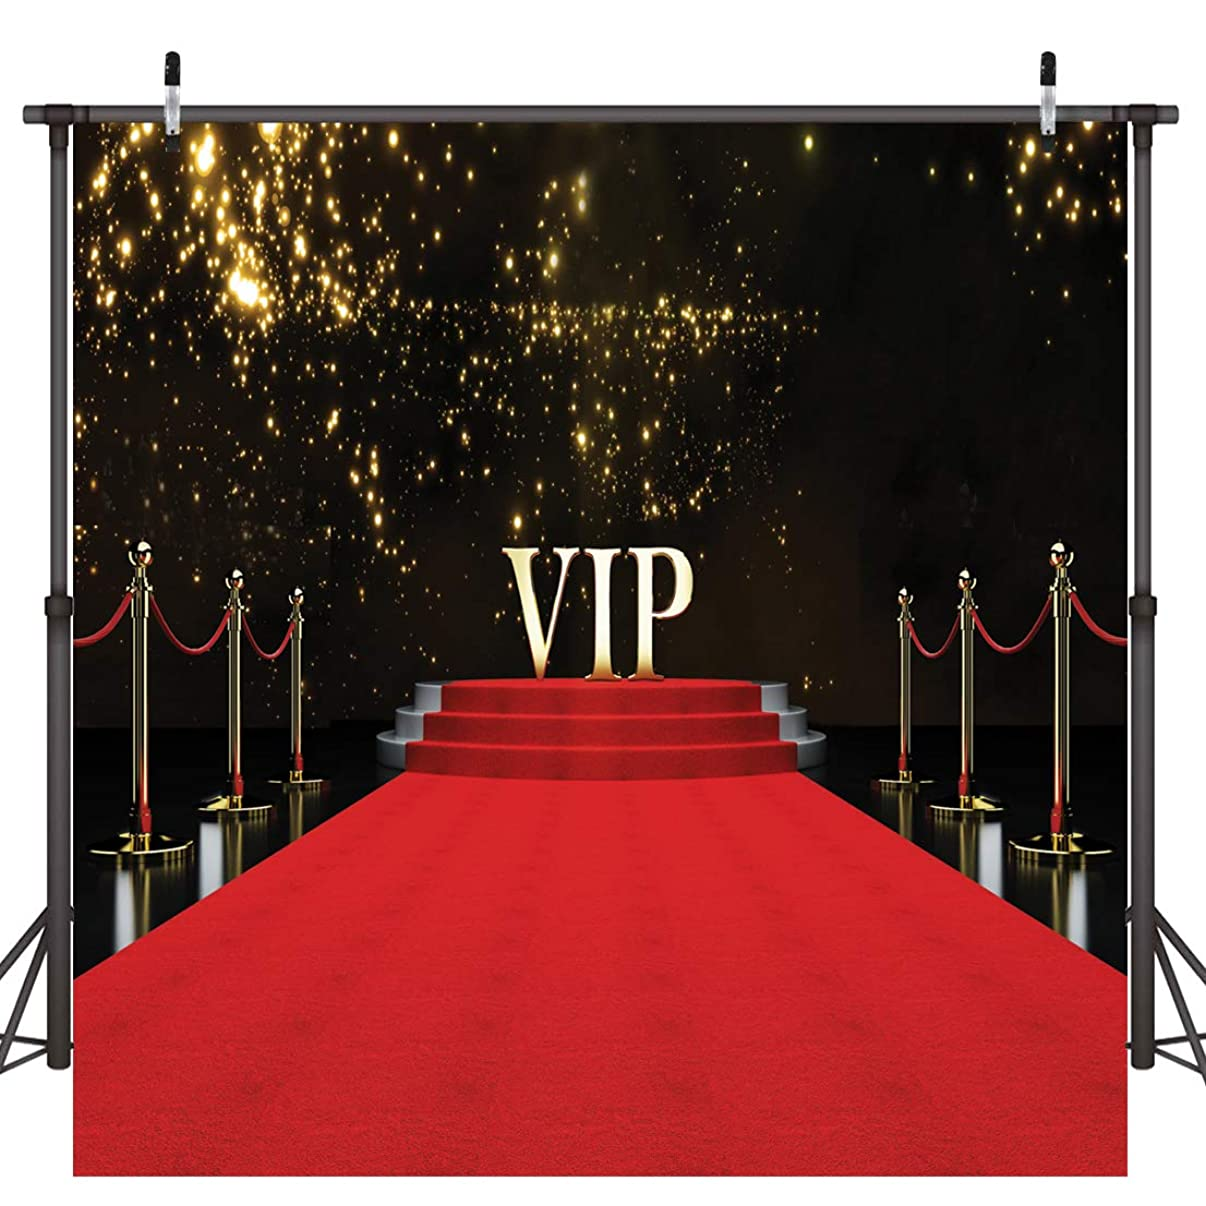 Dudaacvt 8x8ft Vinyl Photography Backdrop Stage Lighting VIP Red Carpet Background for Wedding Customized Photo Studio Props D0830808